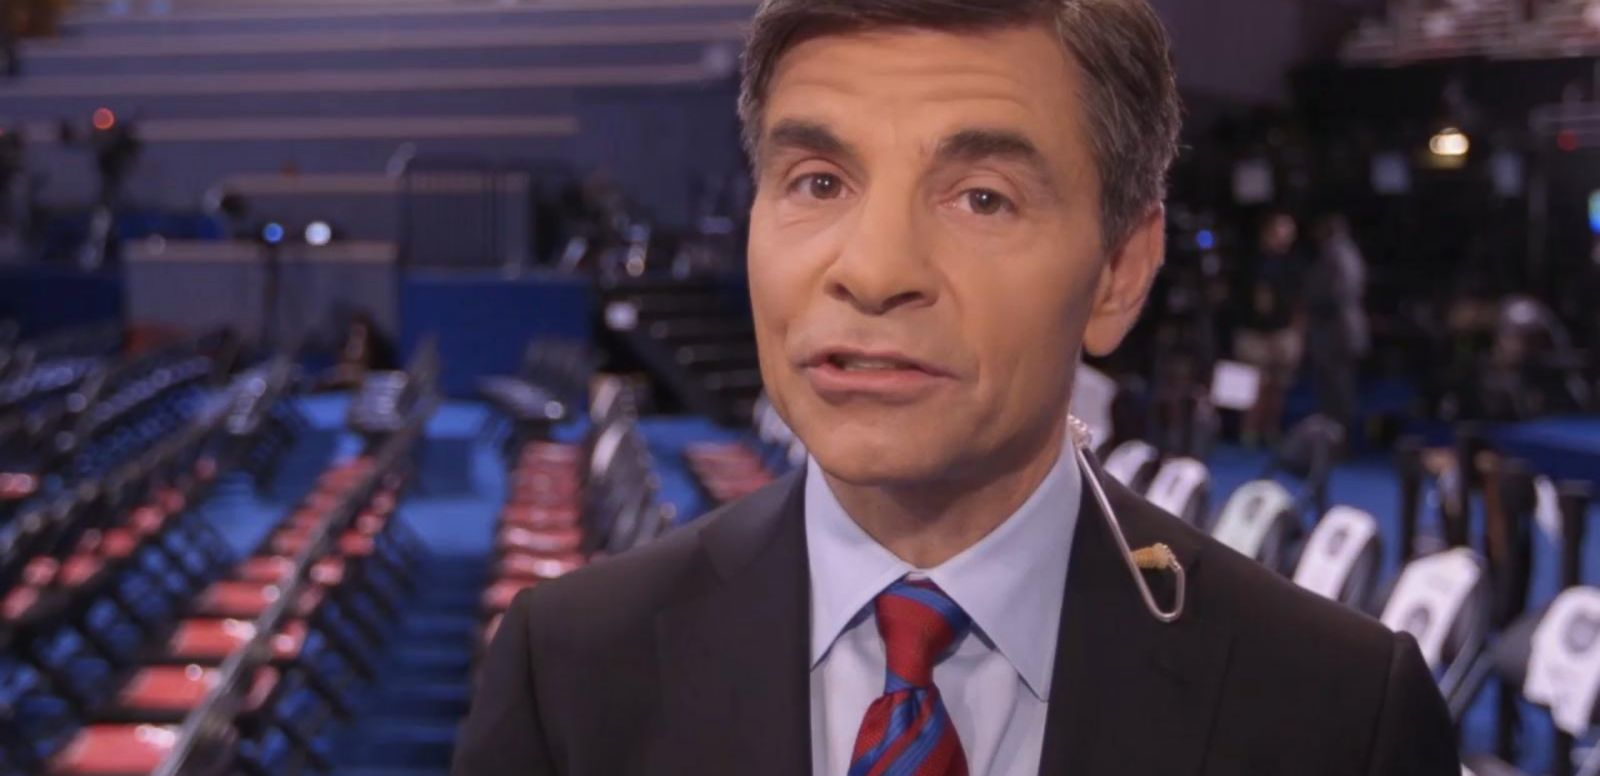 VIDEO: George Stephanopoulos' Top Stories on Final Day of the Democratic National Convention